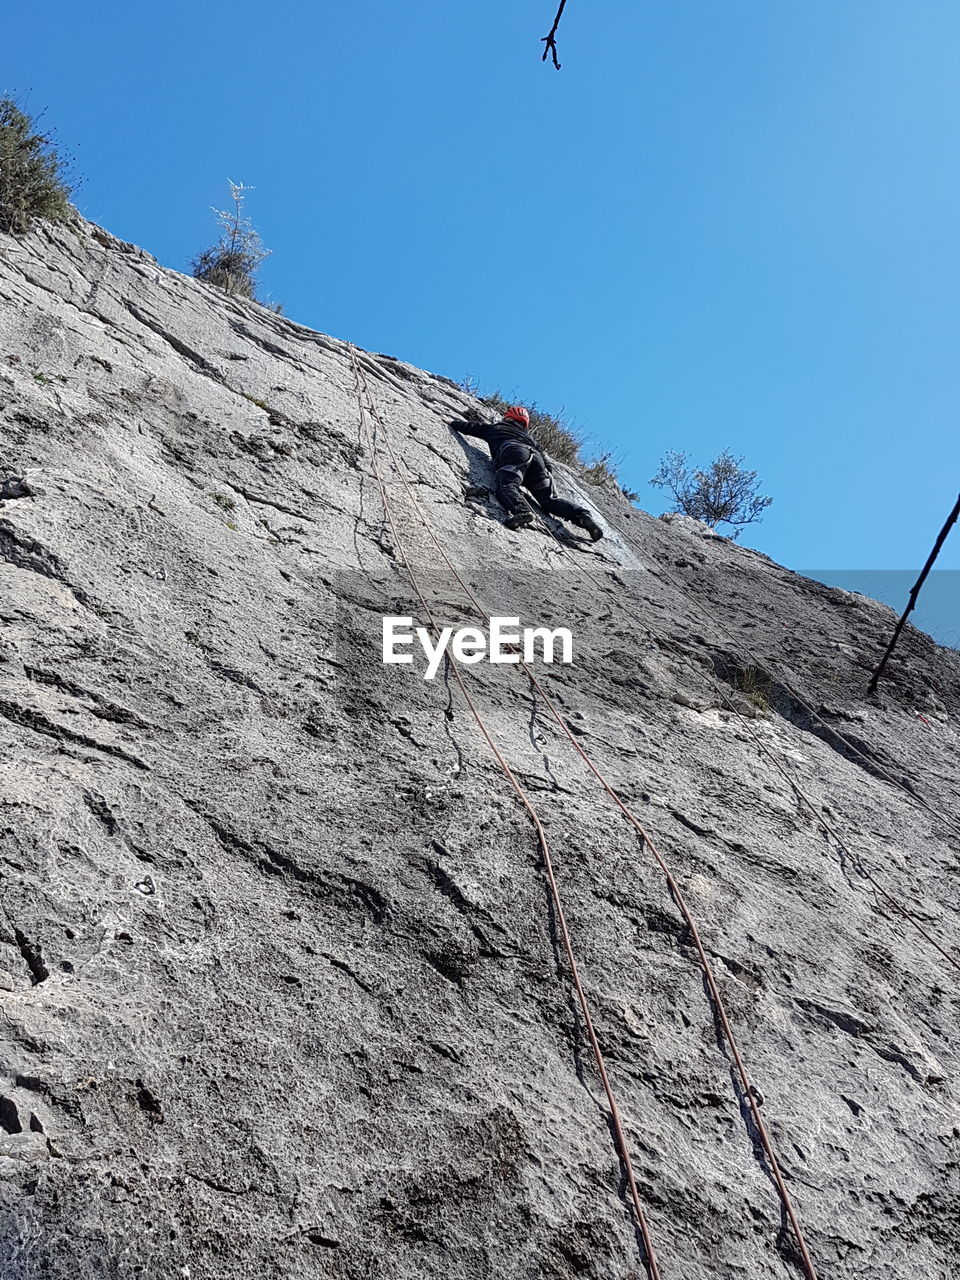 low angle view, rock climbing, climbing, outdoors, day, adventure, clear sky, challenge, mountain, men, real people, one person, rock face, extreme sports, nature, high, people, sky